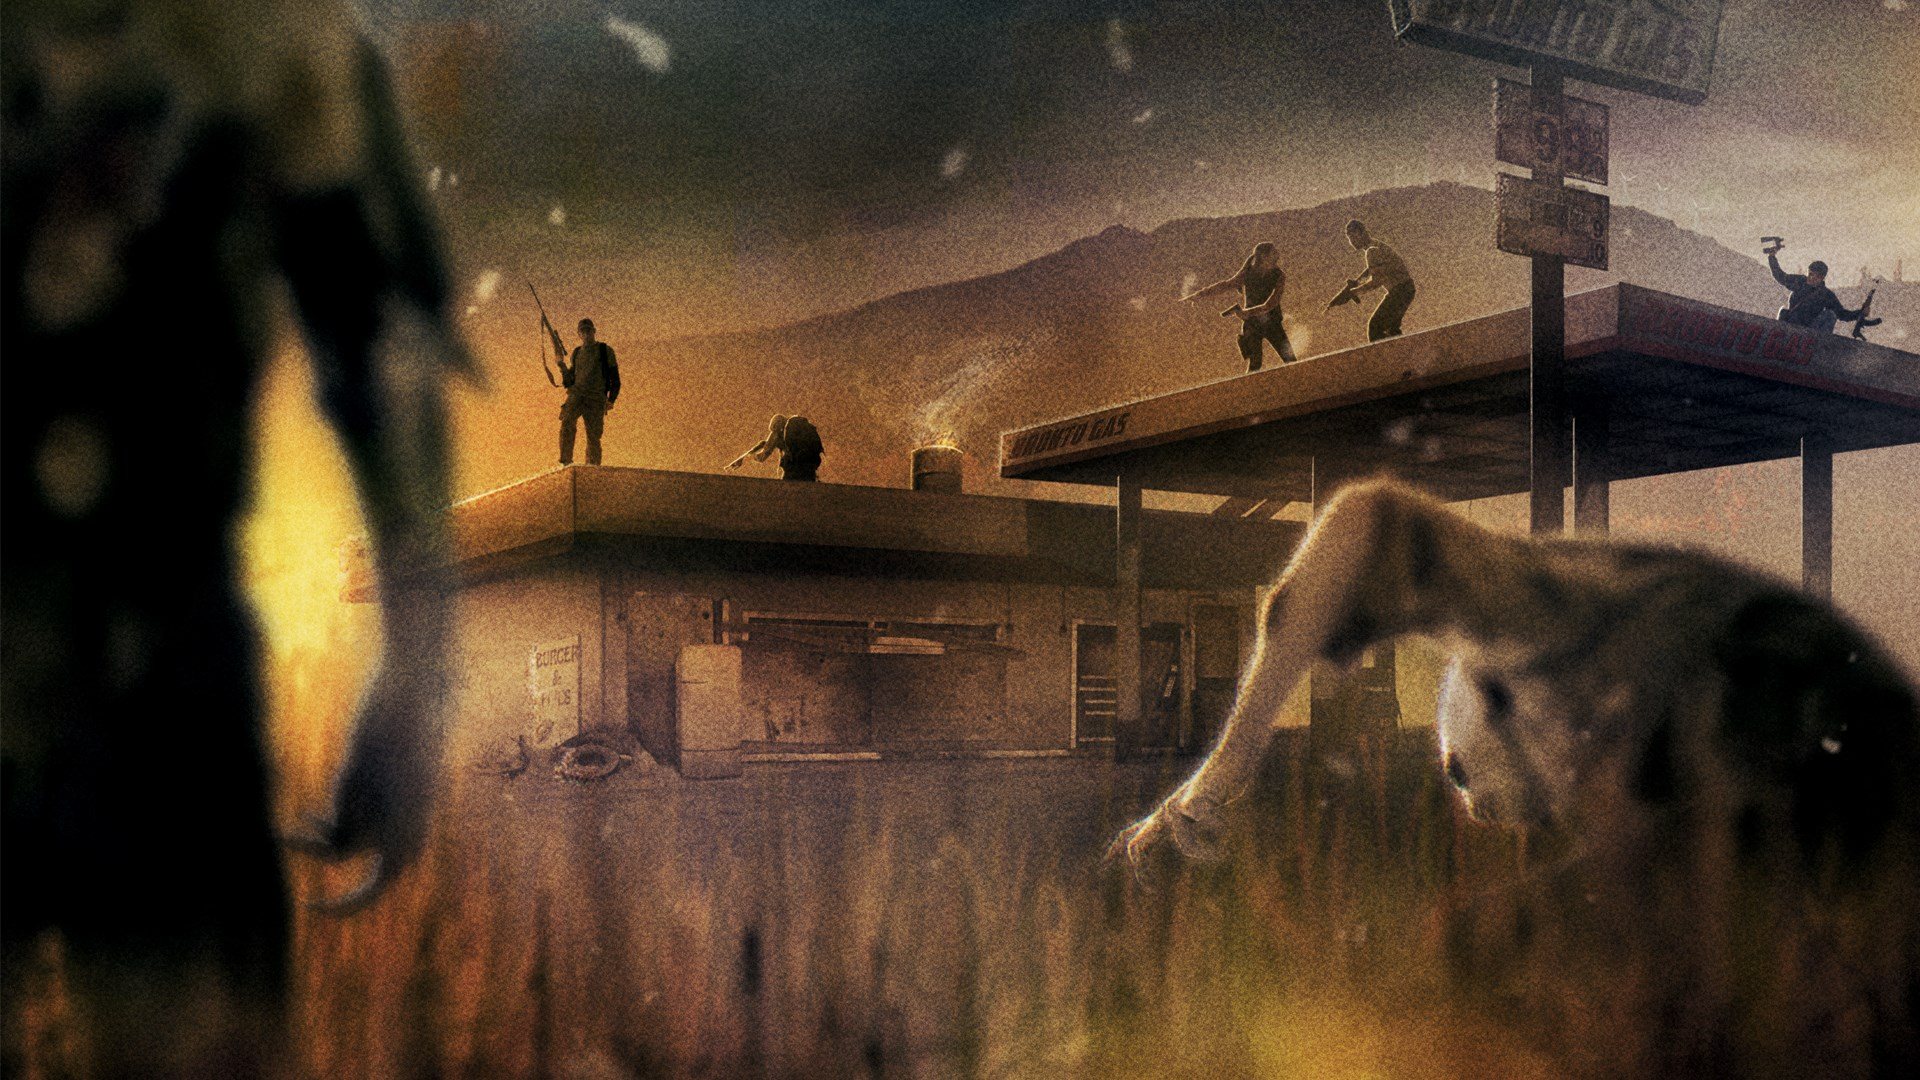 Buy State of Decay: Year-One - Microsoft Store en-GB